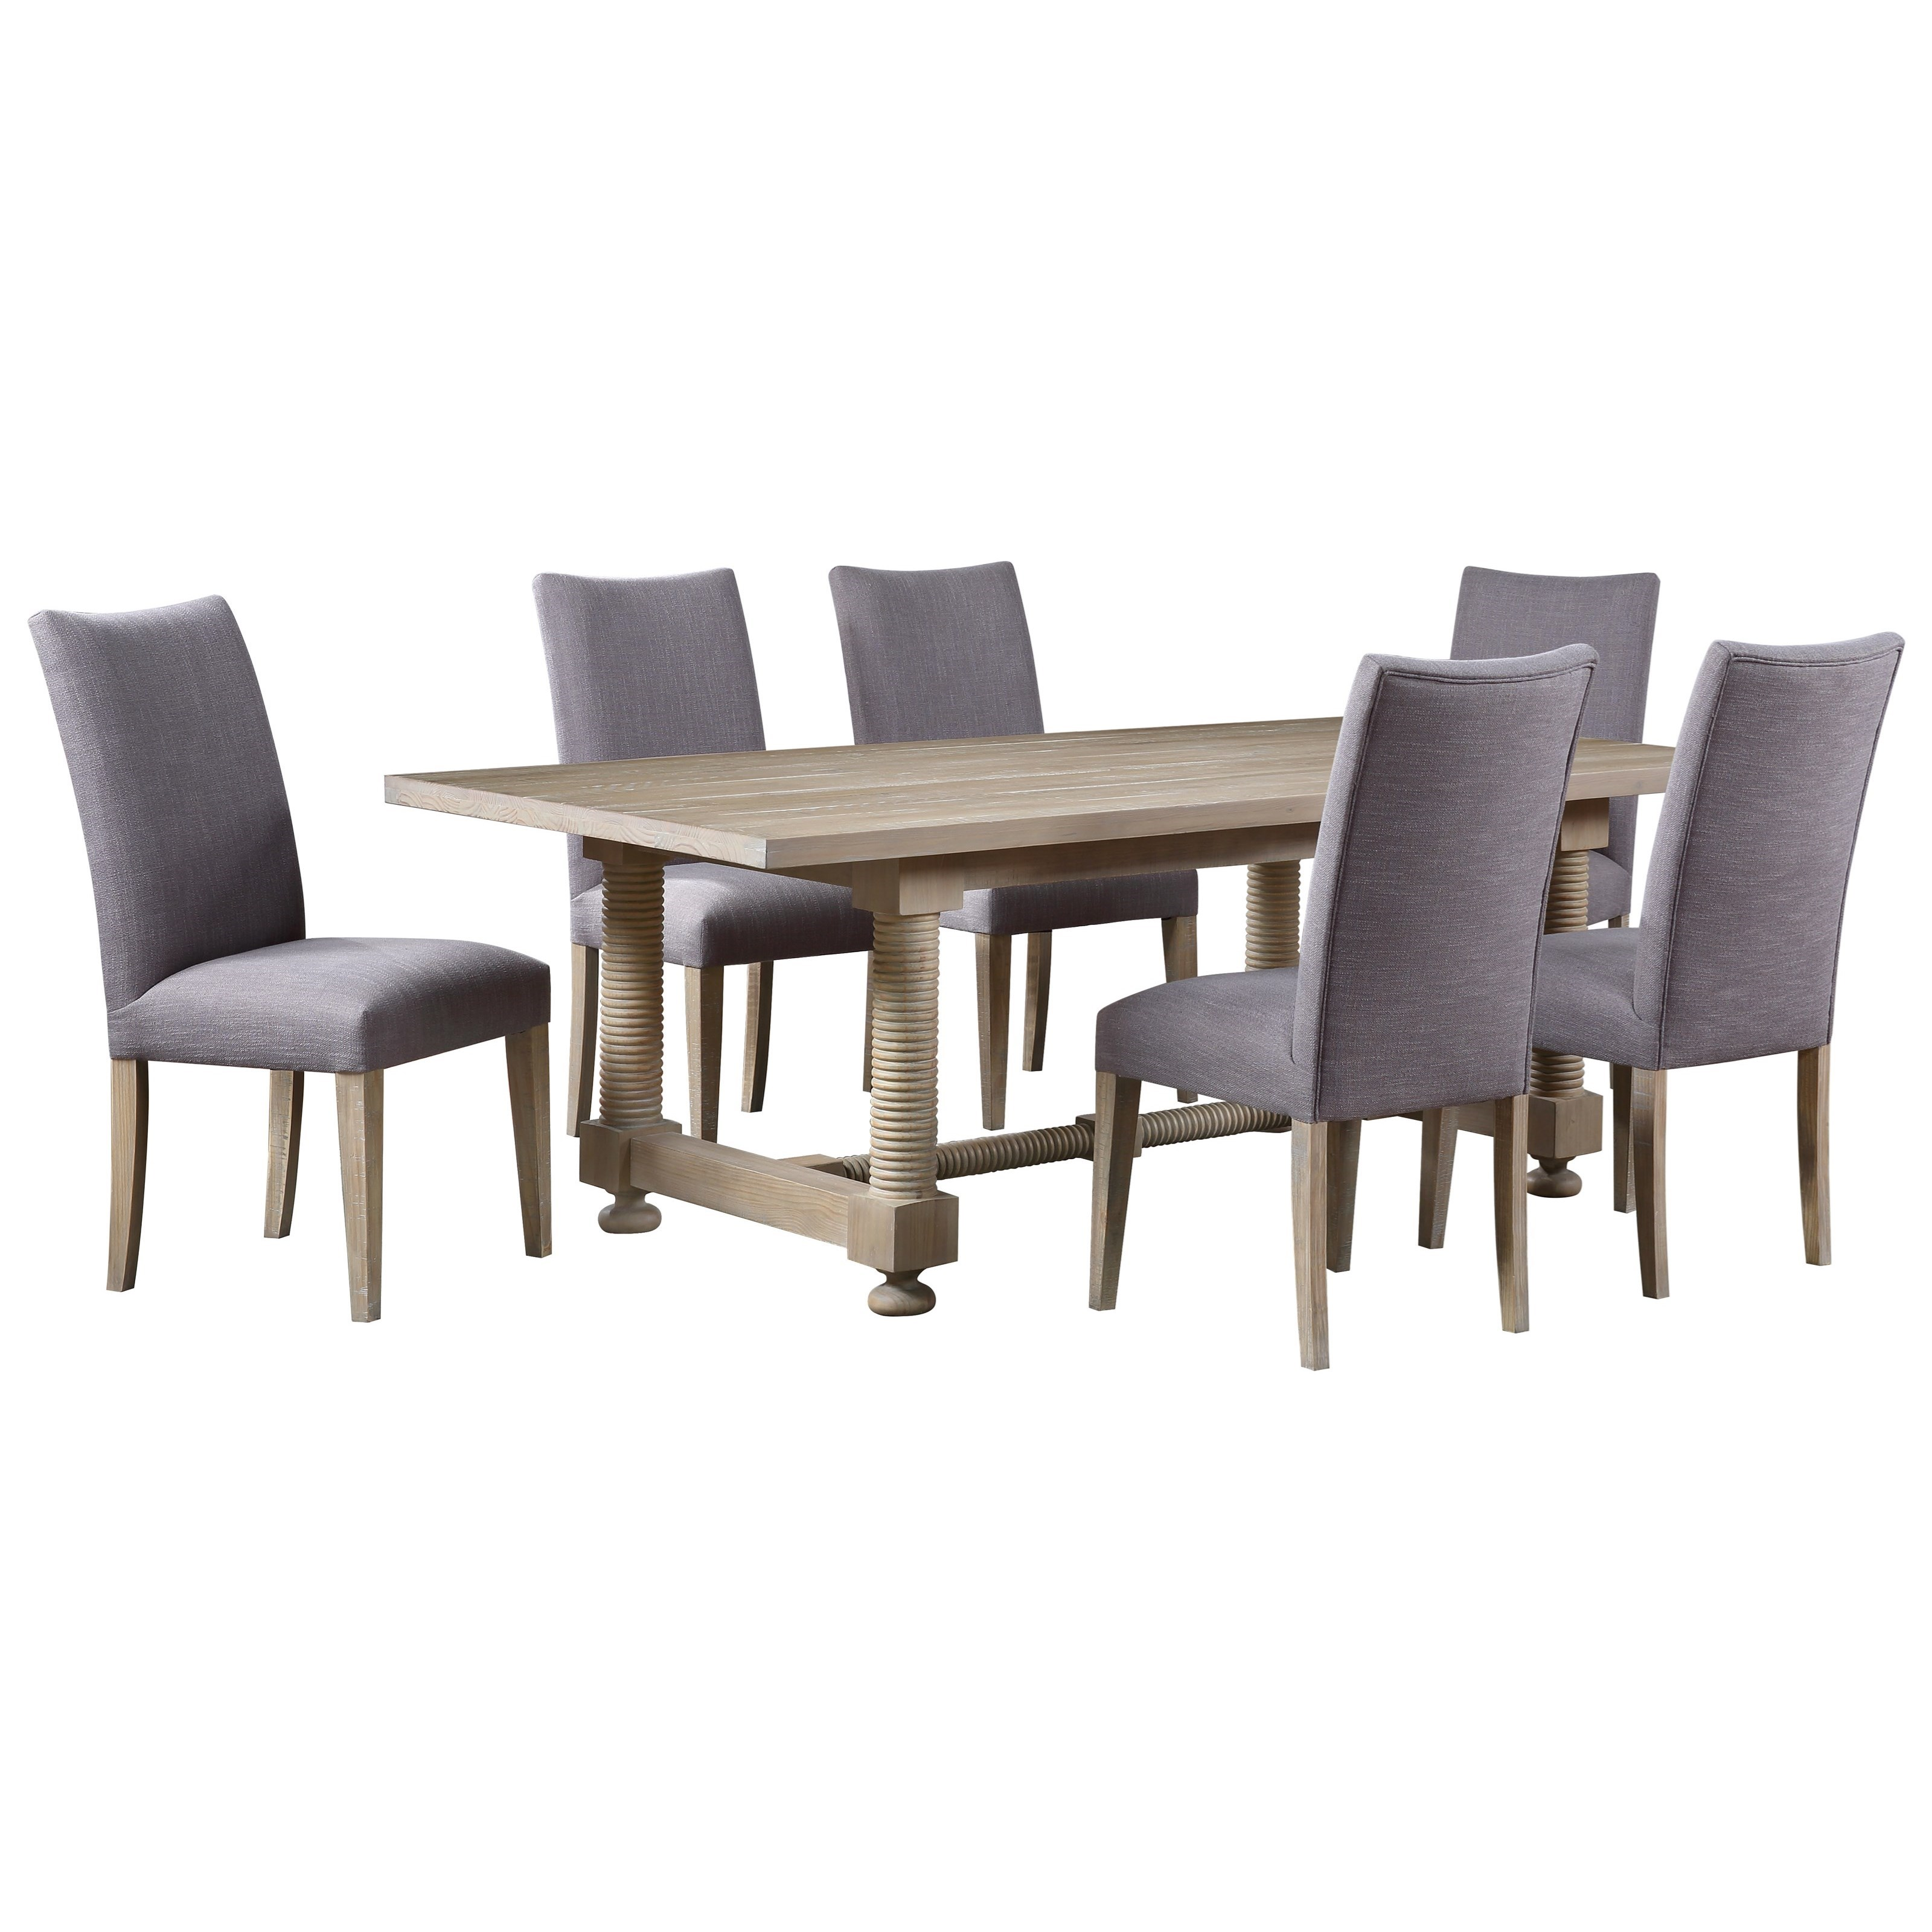 Barrister 7-Piece Table and Chair Set by Coast to Coast Imports at Baer's Furniture